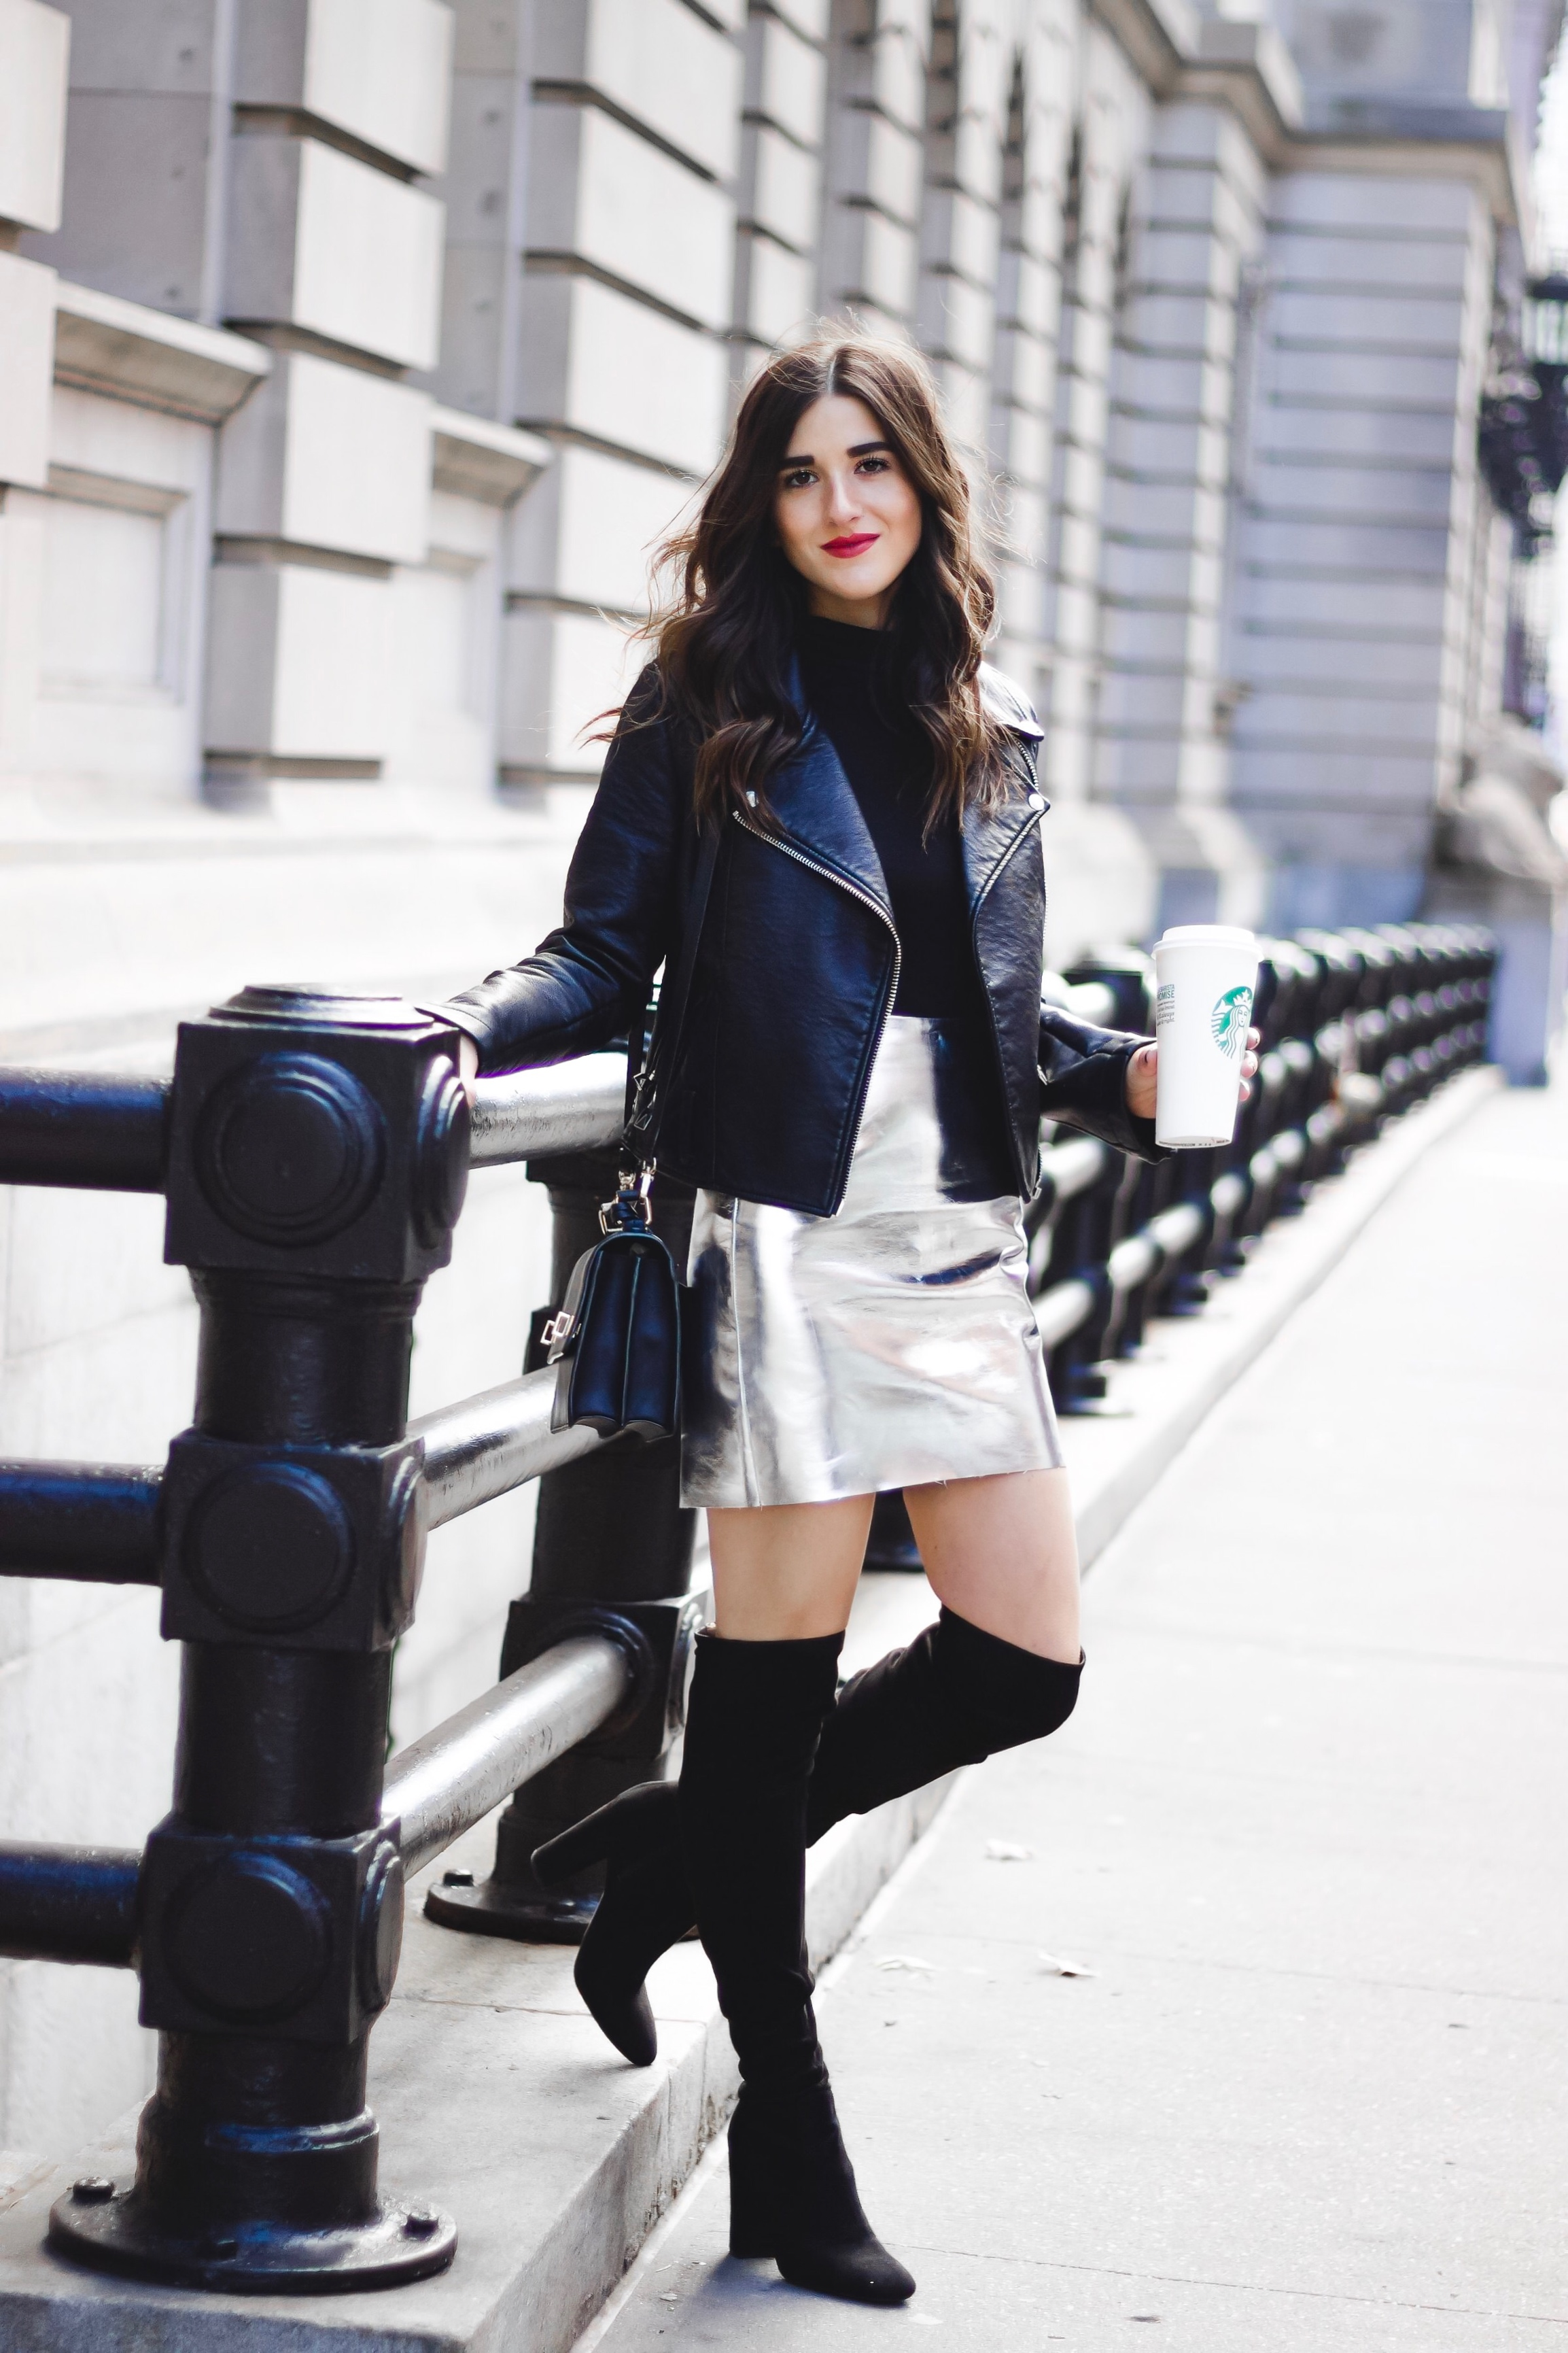 be46eb1570 Leather Mini Skirt And Boots